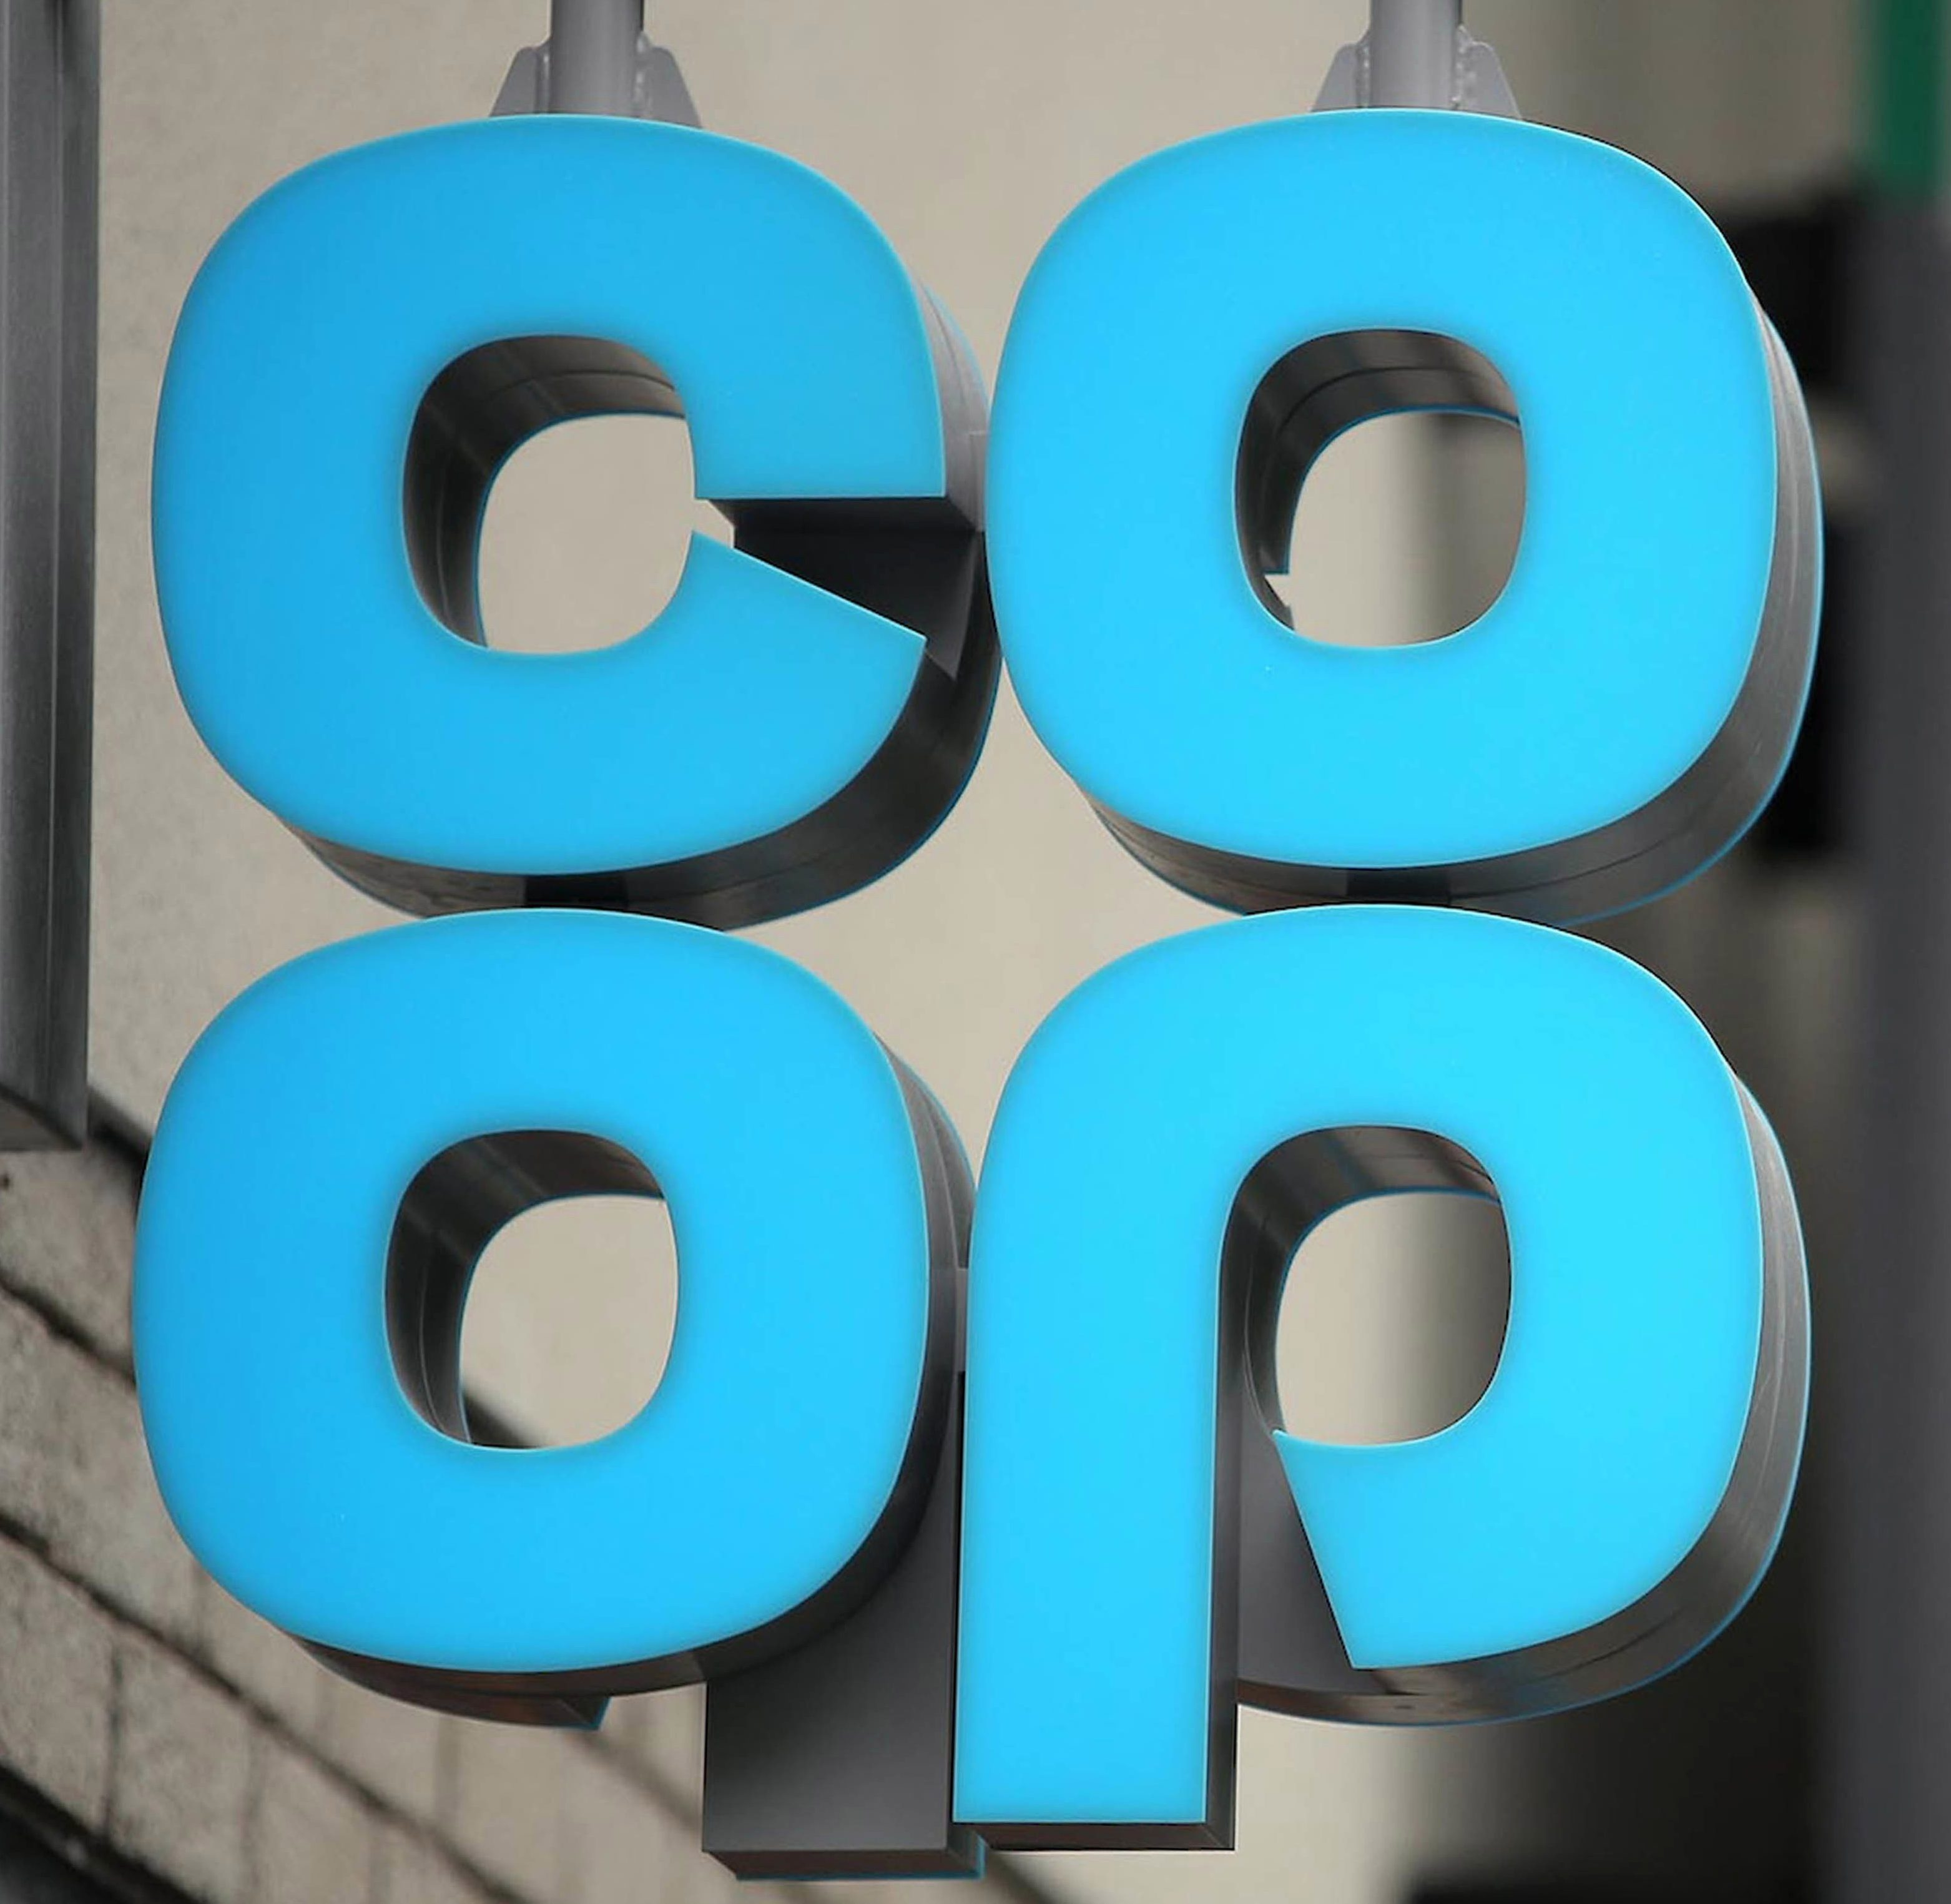 Co-op offers shoppers the opportunity to buy stamps for a savings book!